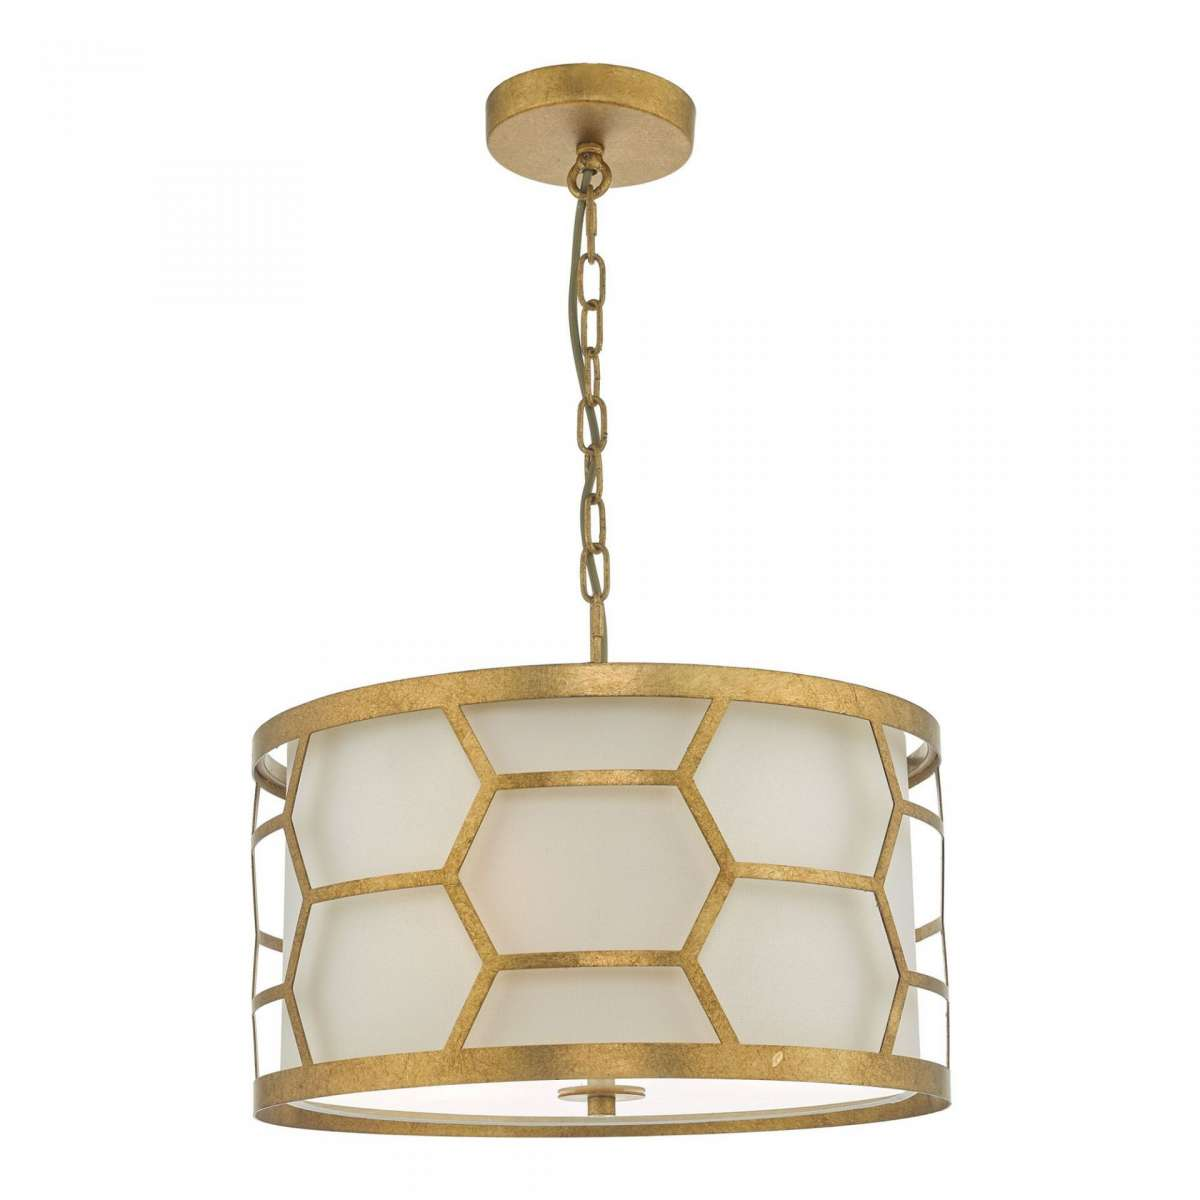 Epstein 3 light Pendant Gold with Ivory Shade